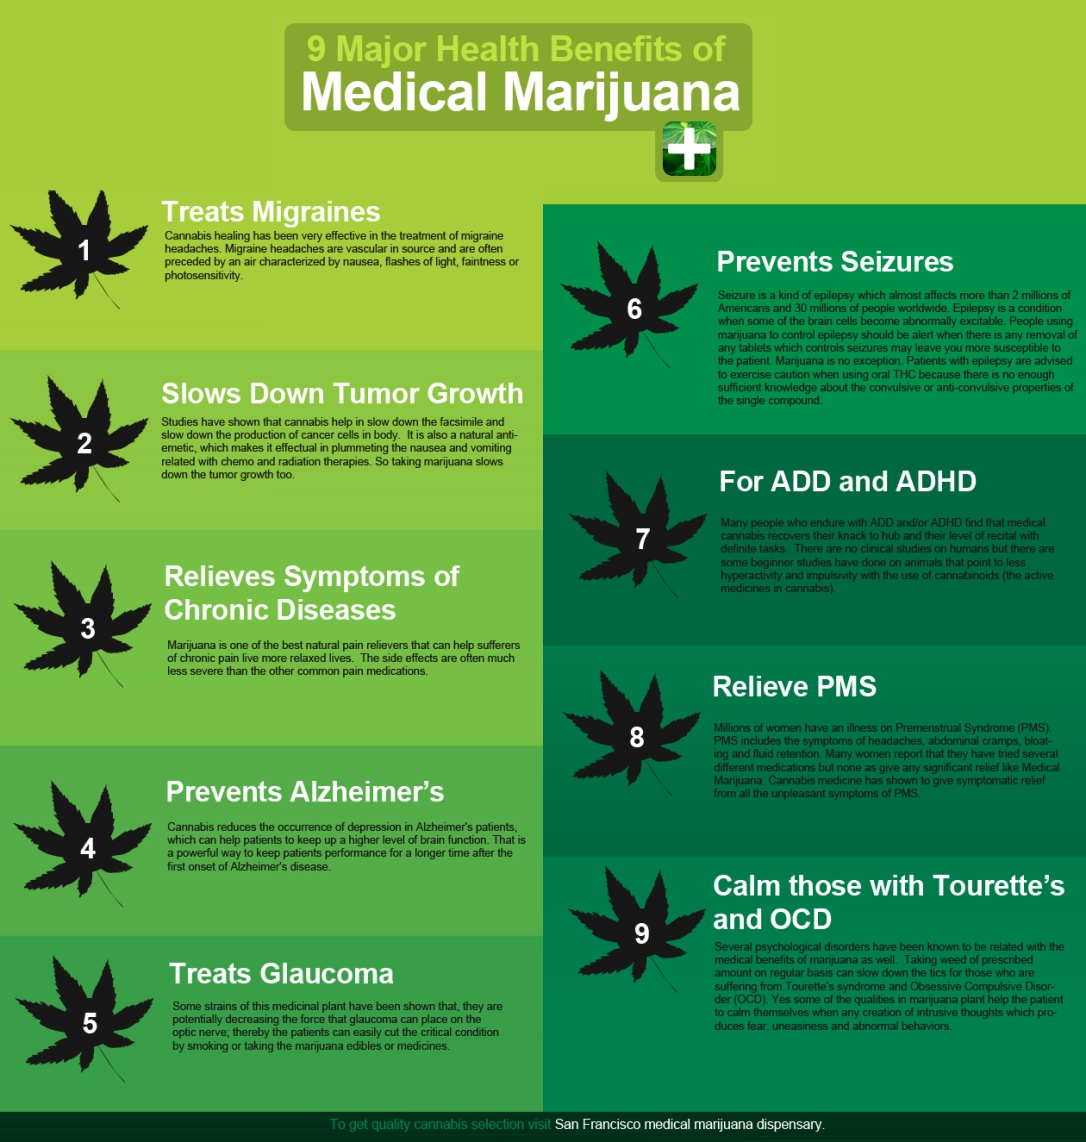 major-health-benefits-of-medical-marijuana